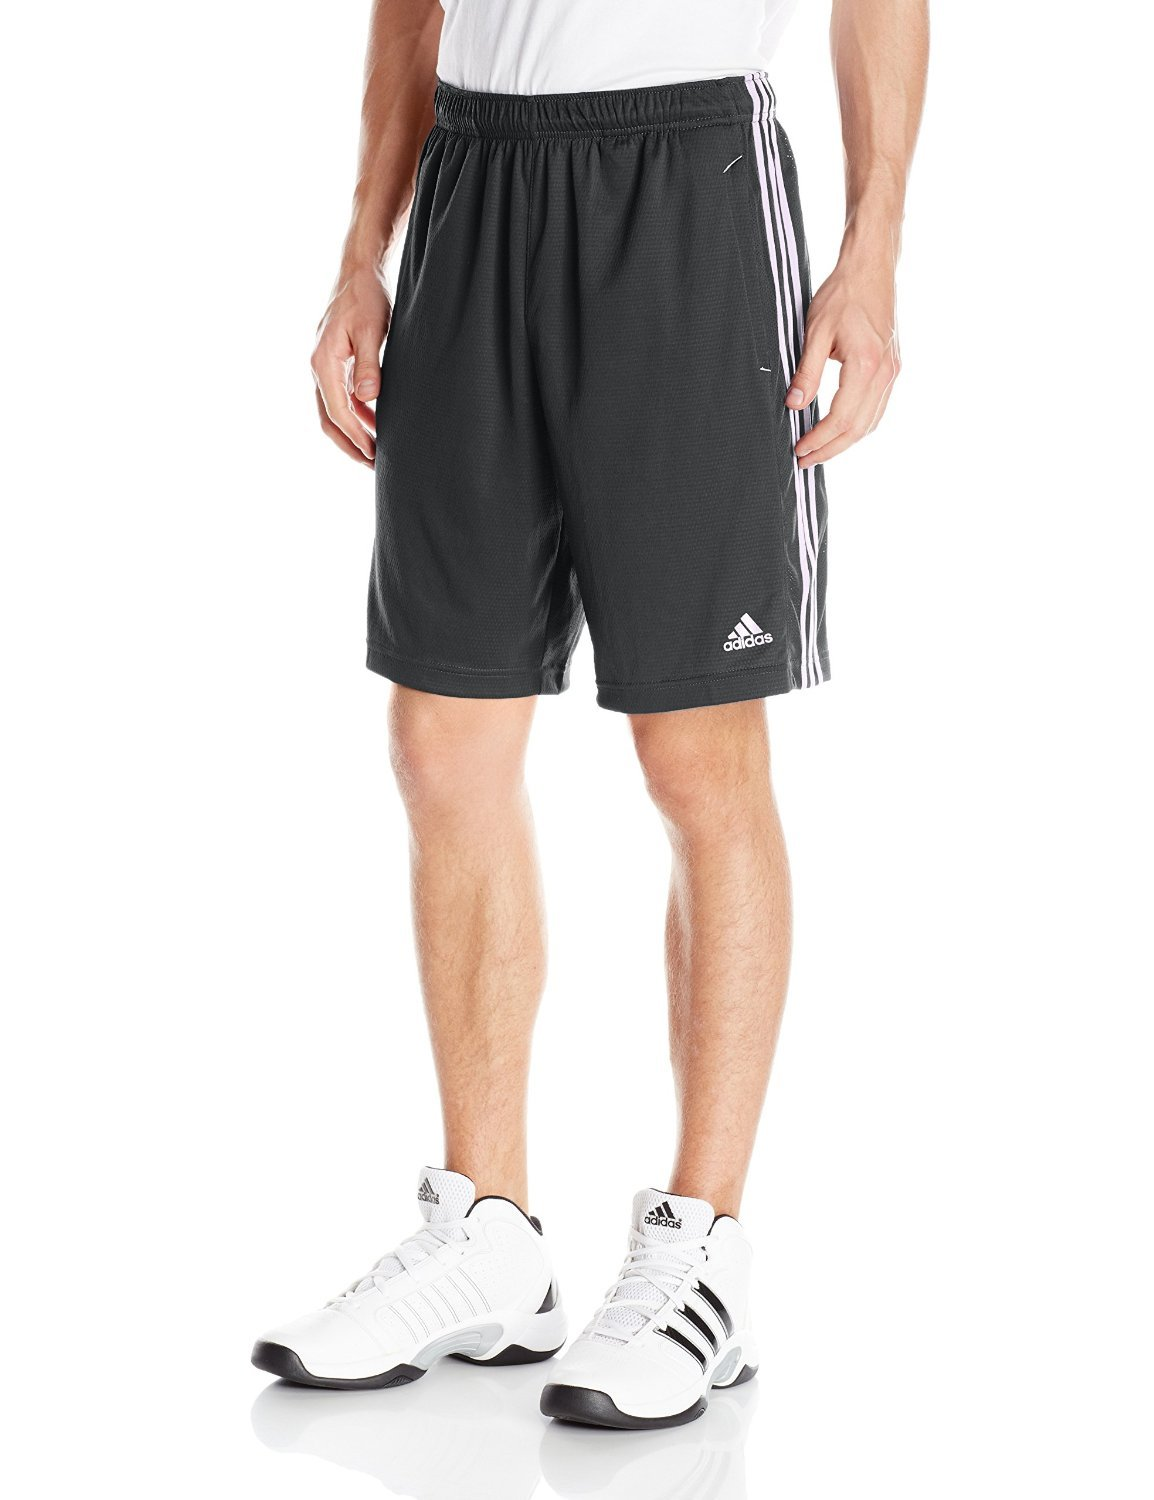 Adidas Men's Essential Shorts